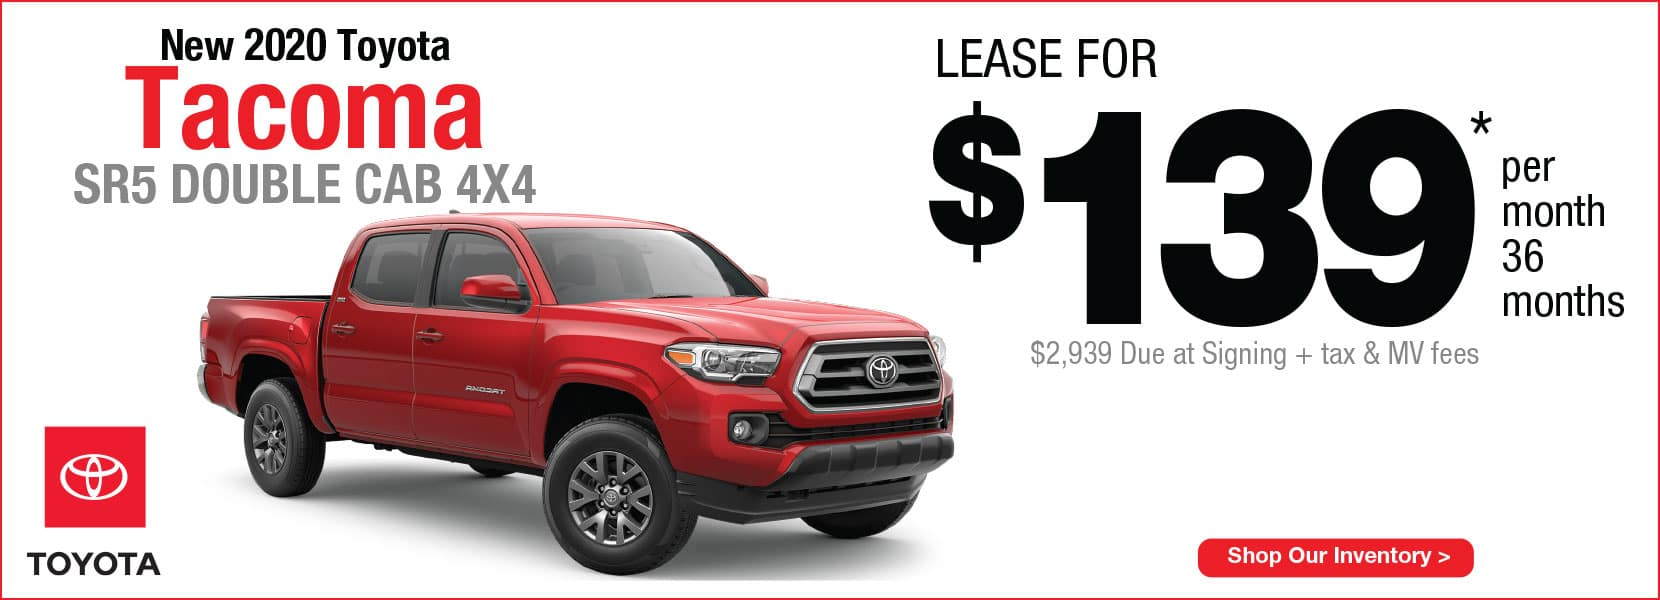 New 2020 Toyota Tacoma Lease offer Koch 33 Toyota Easton PA